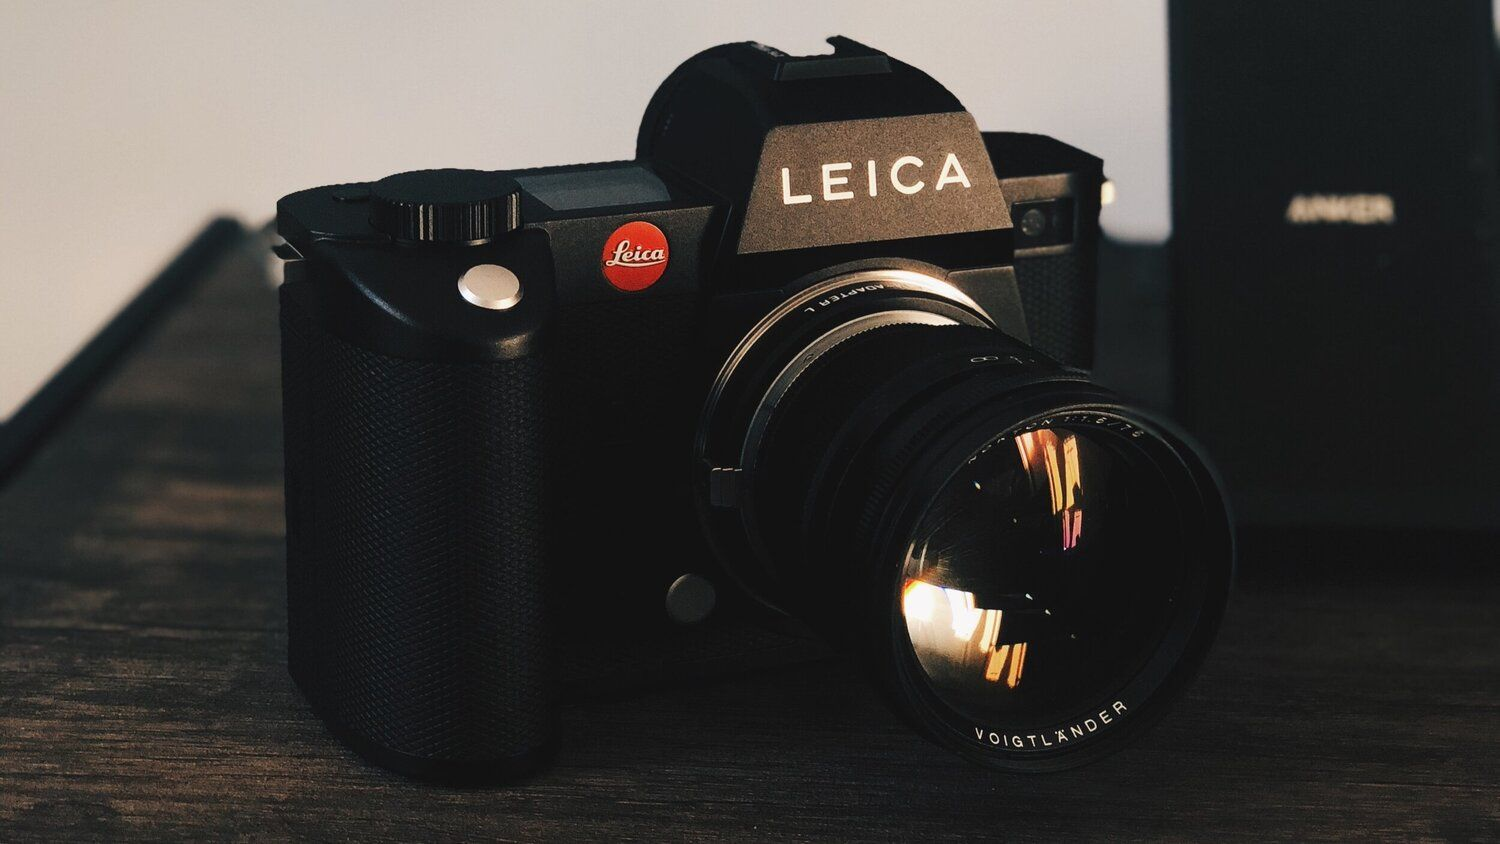 24 Hours with the Leica SL2: Worth Every Penny and More